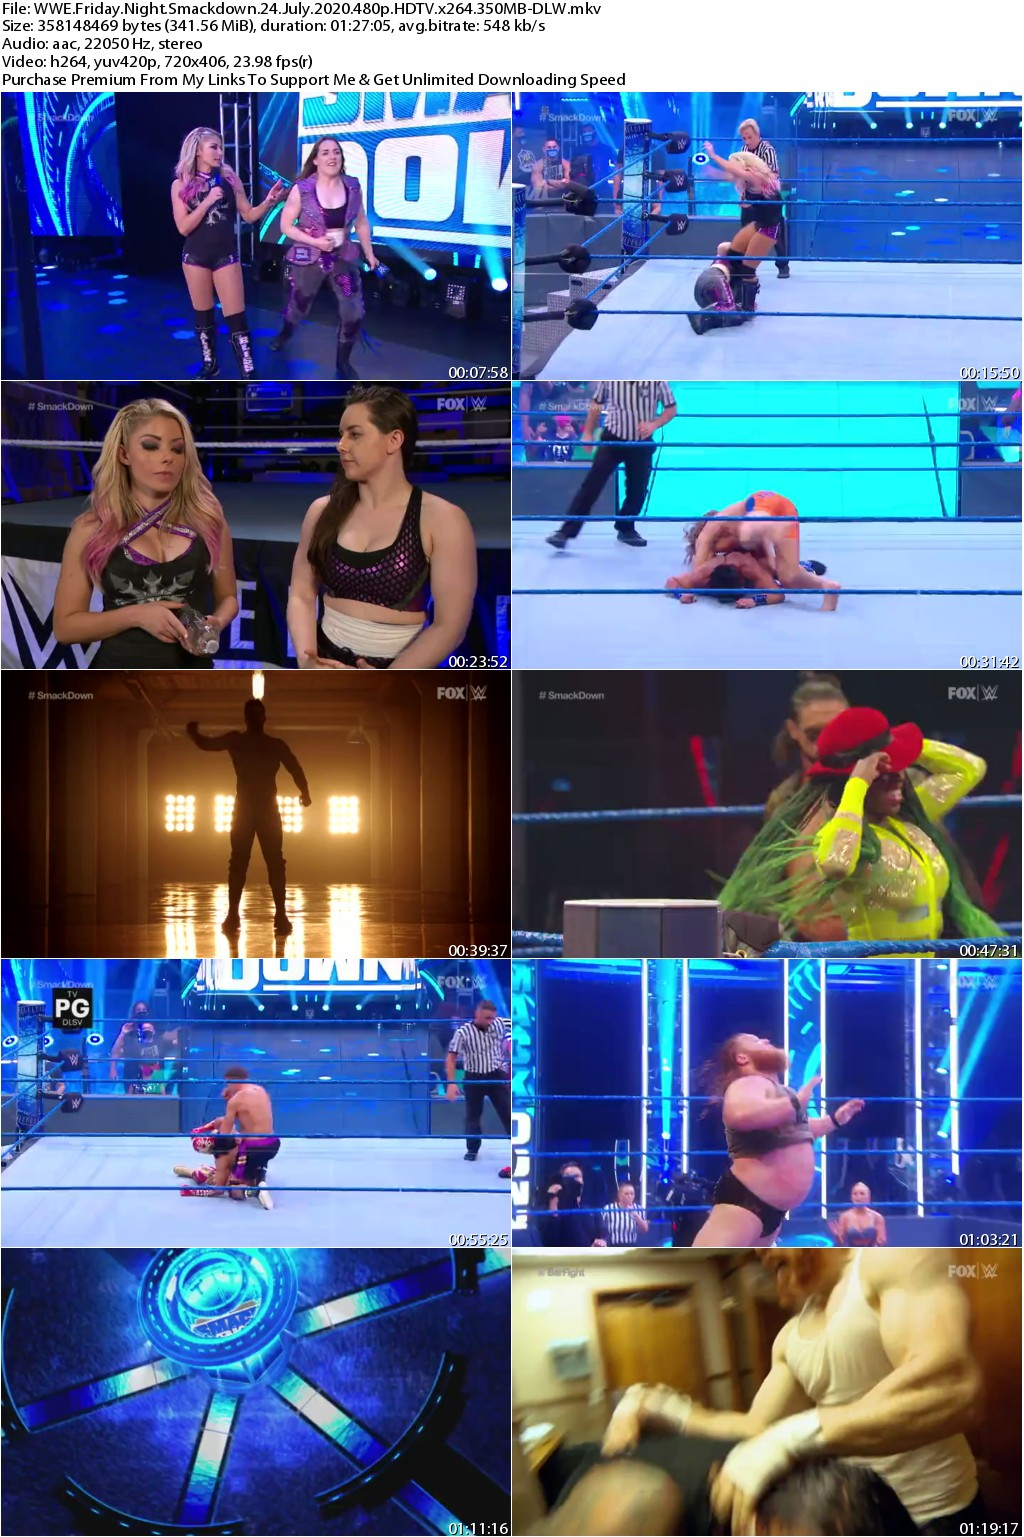 WWE Friday Night Smackdown 24 July 2020 480p HDTV x264 350MB-DLW